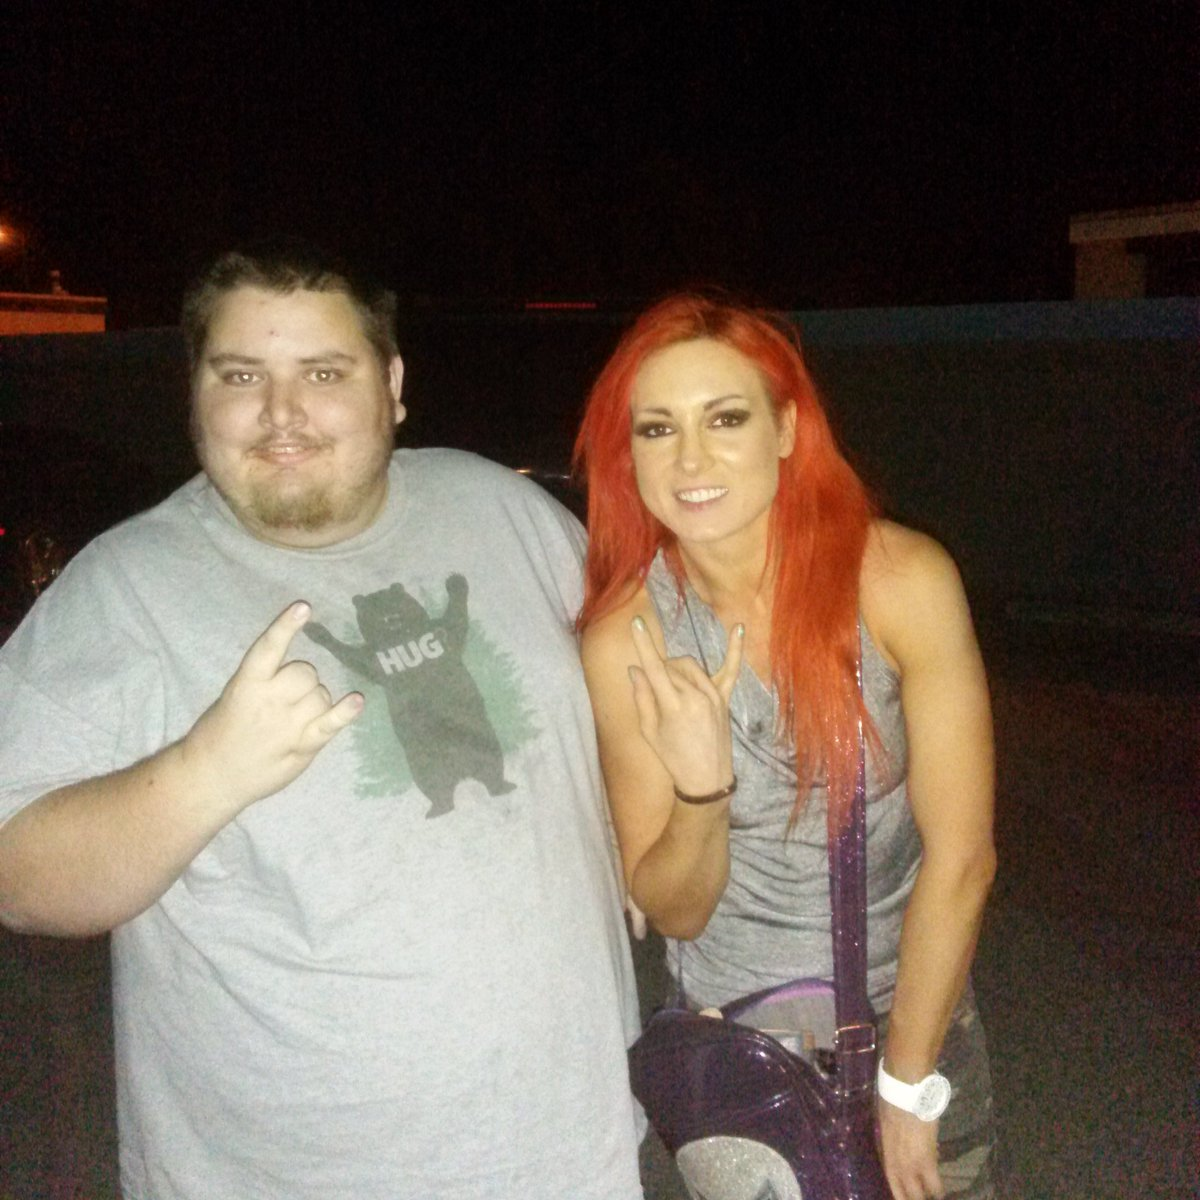 Thanks for taking a pic with me at PWG Bowie @BeckyLynchWWE https://t.co/VJRLwOrEvy